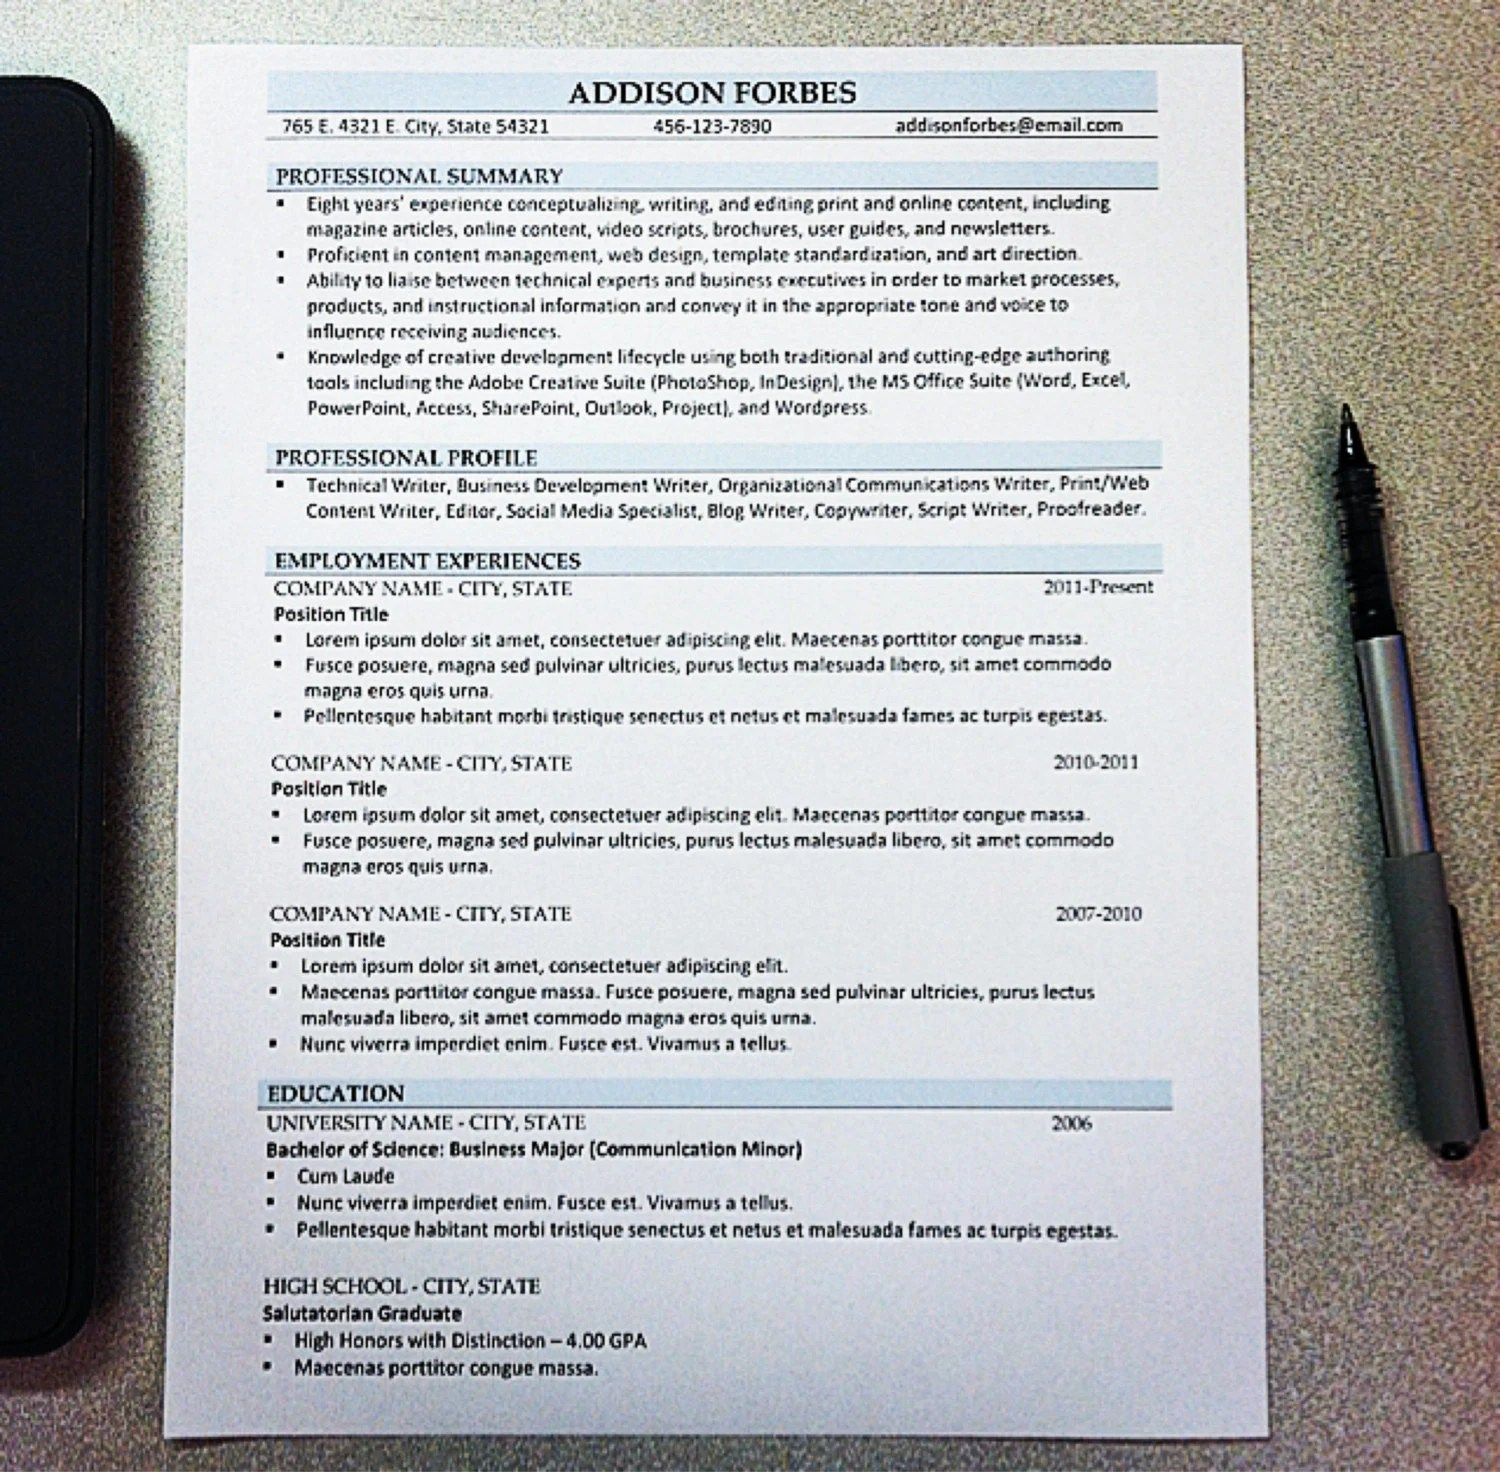 Using Resume Templates When Changing Careers